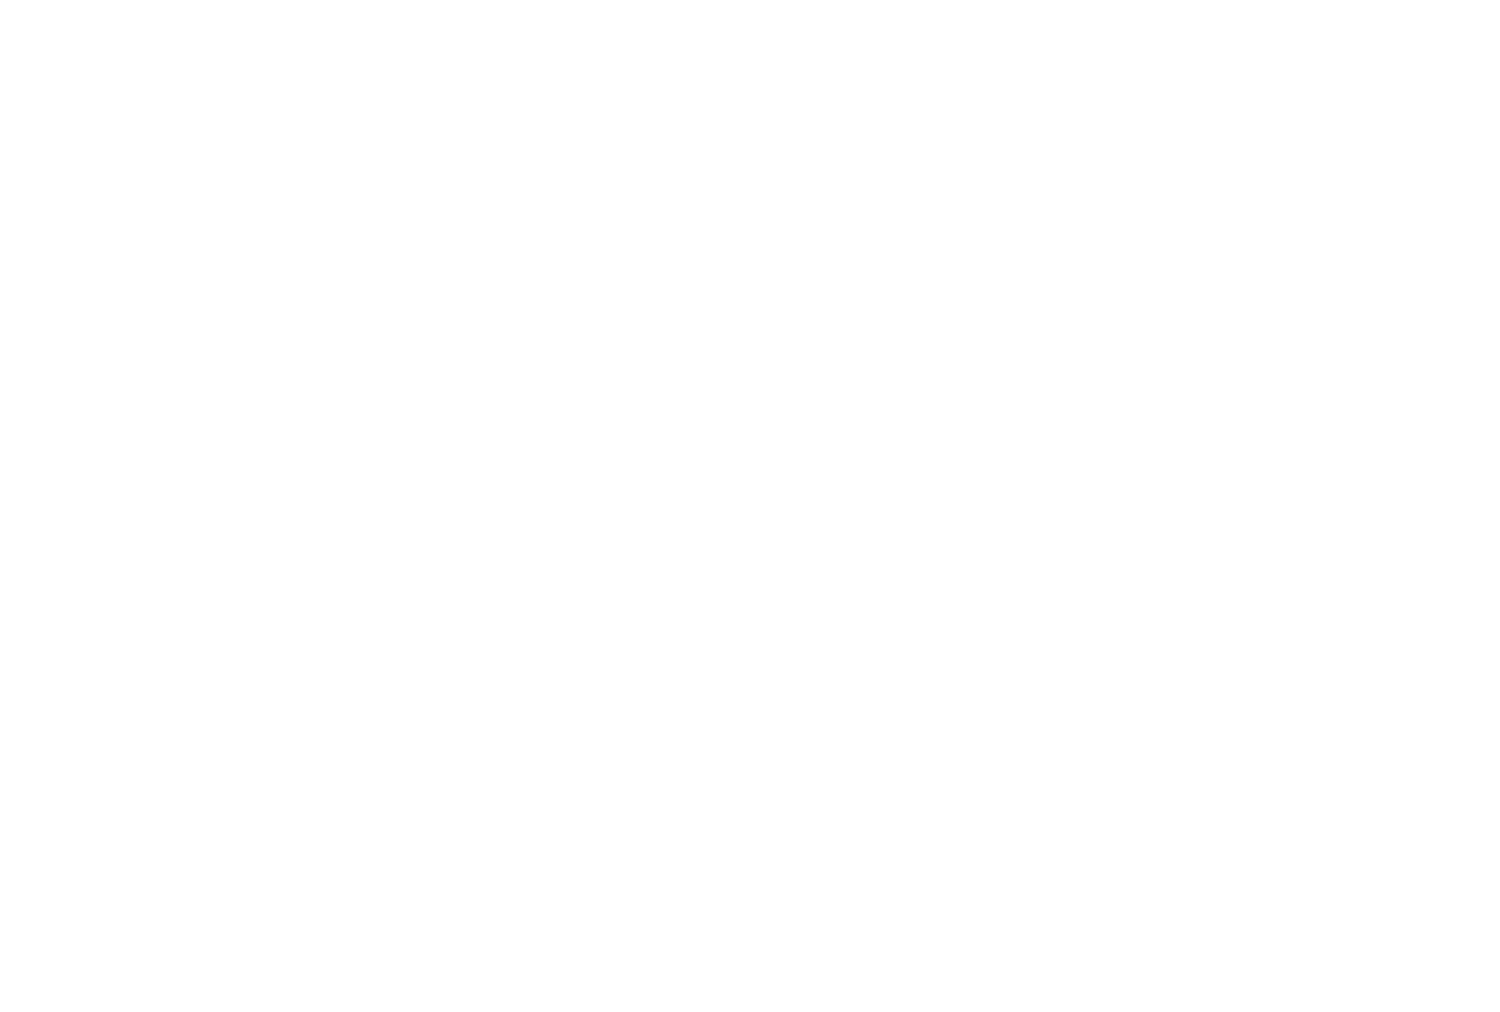 MACALLAN WORKS